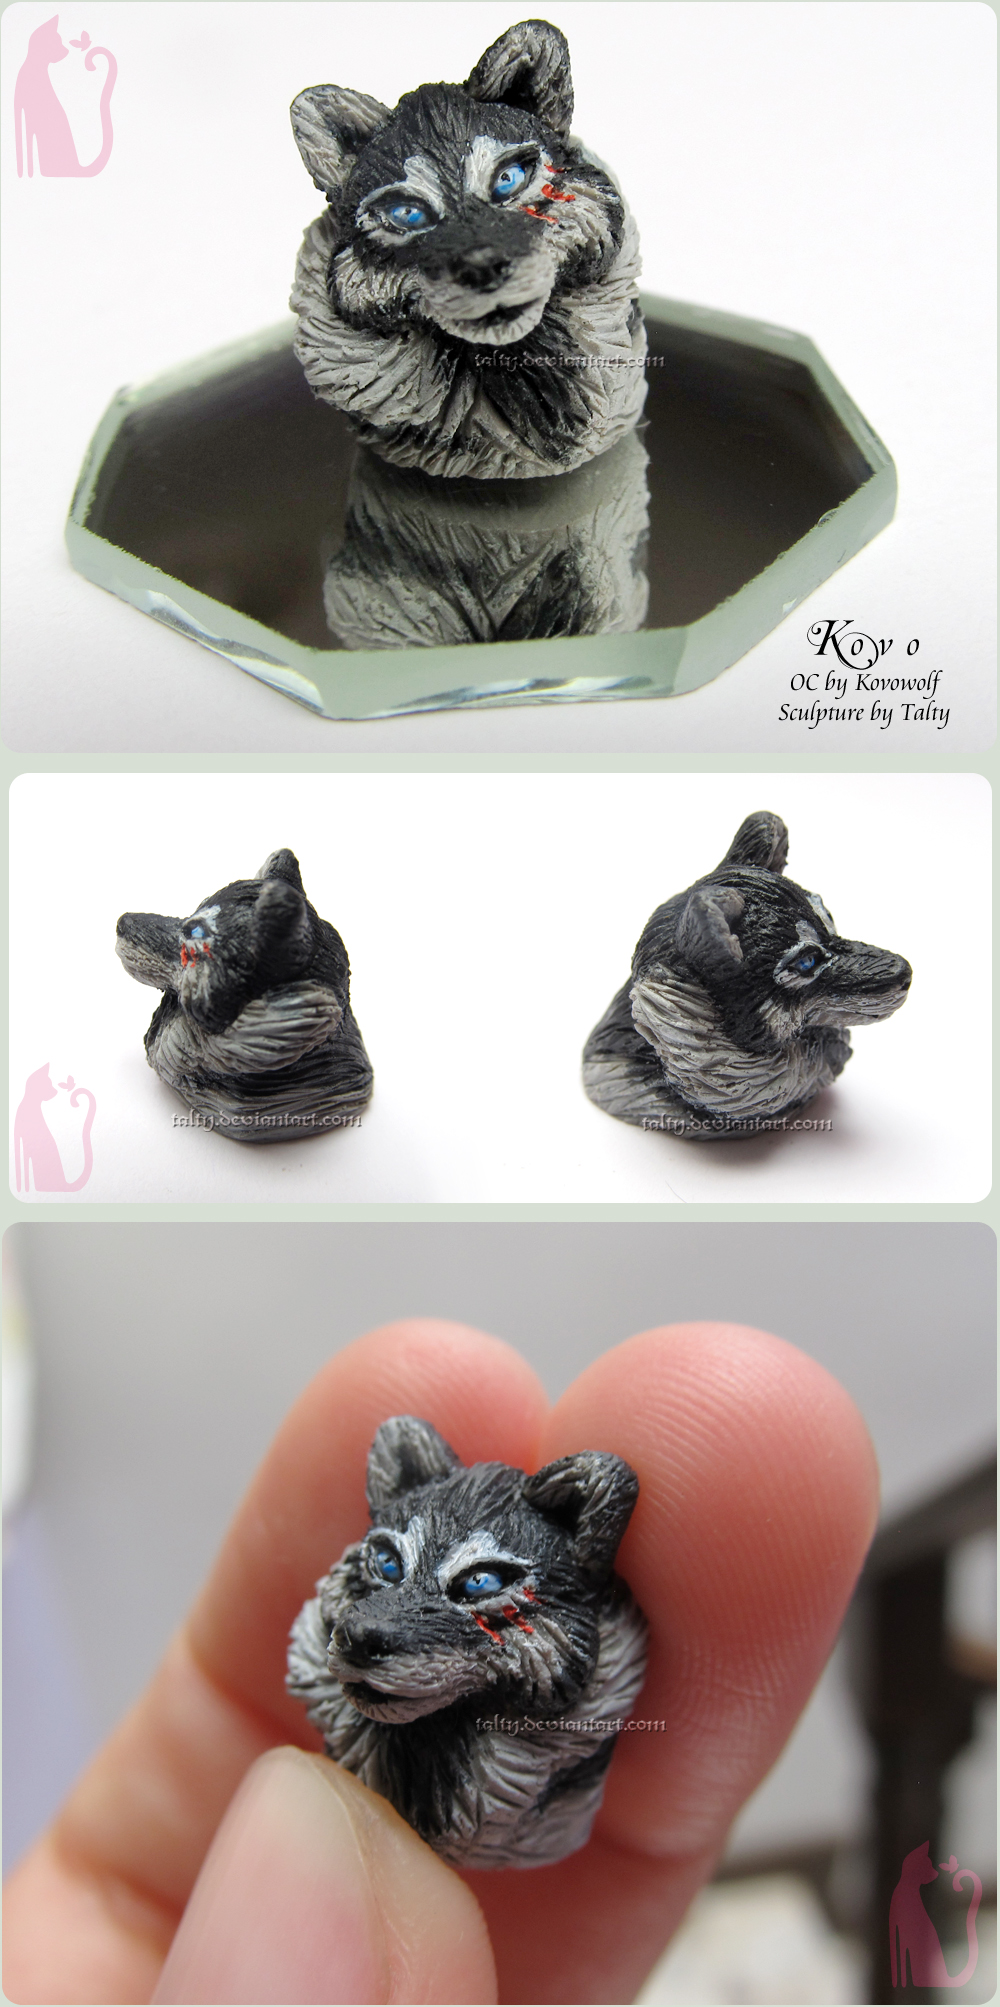 Kovo wolf polymer clay bust sculpture by Talty